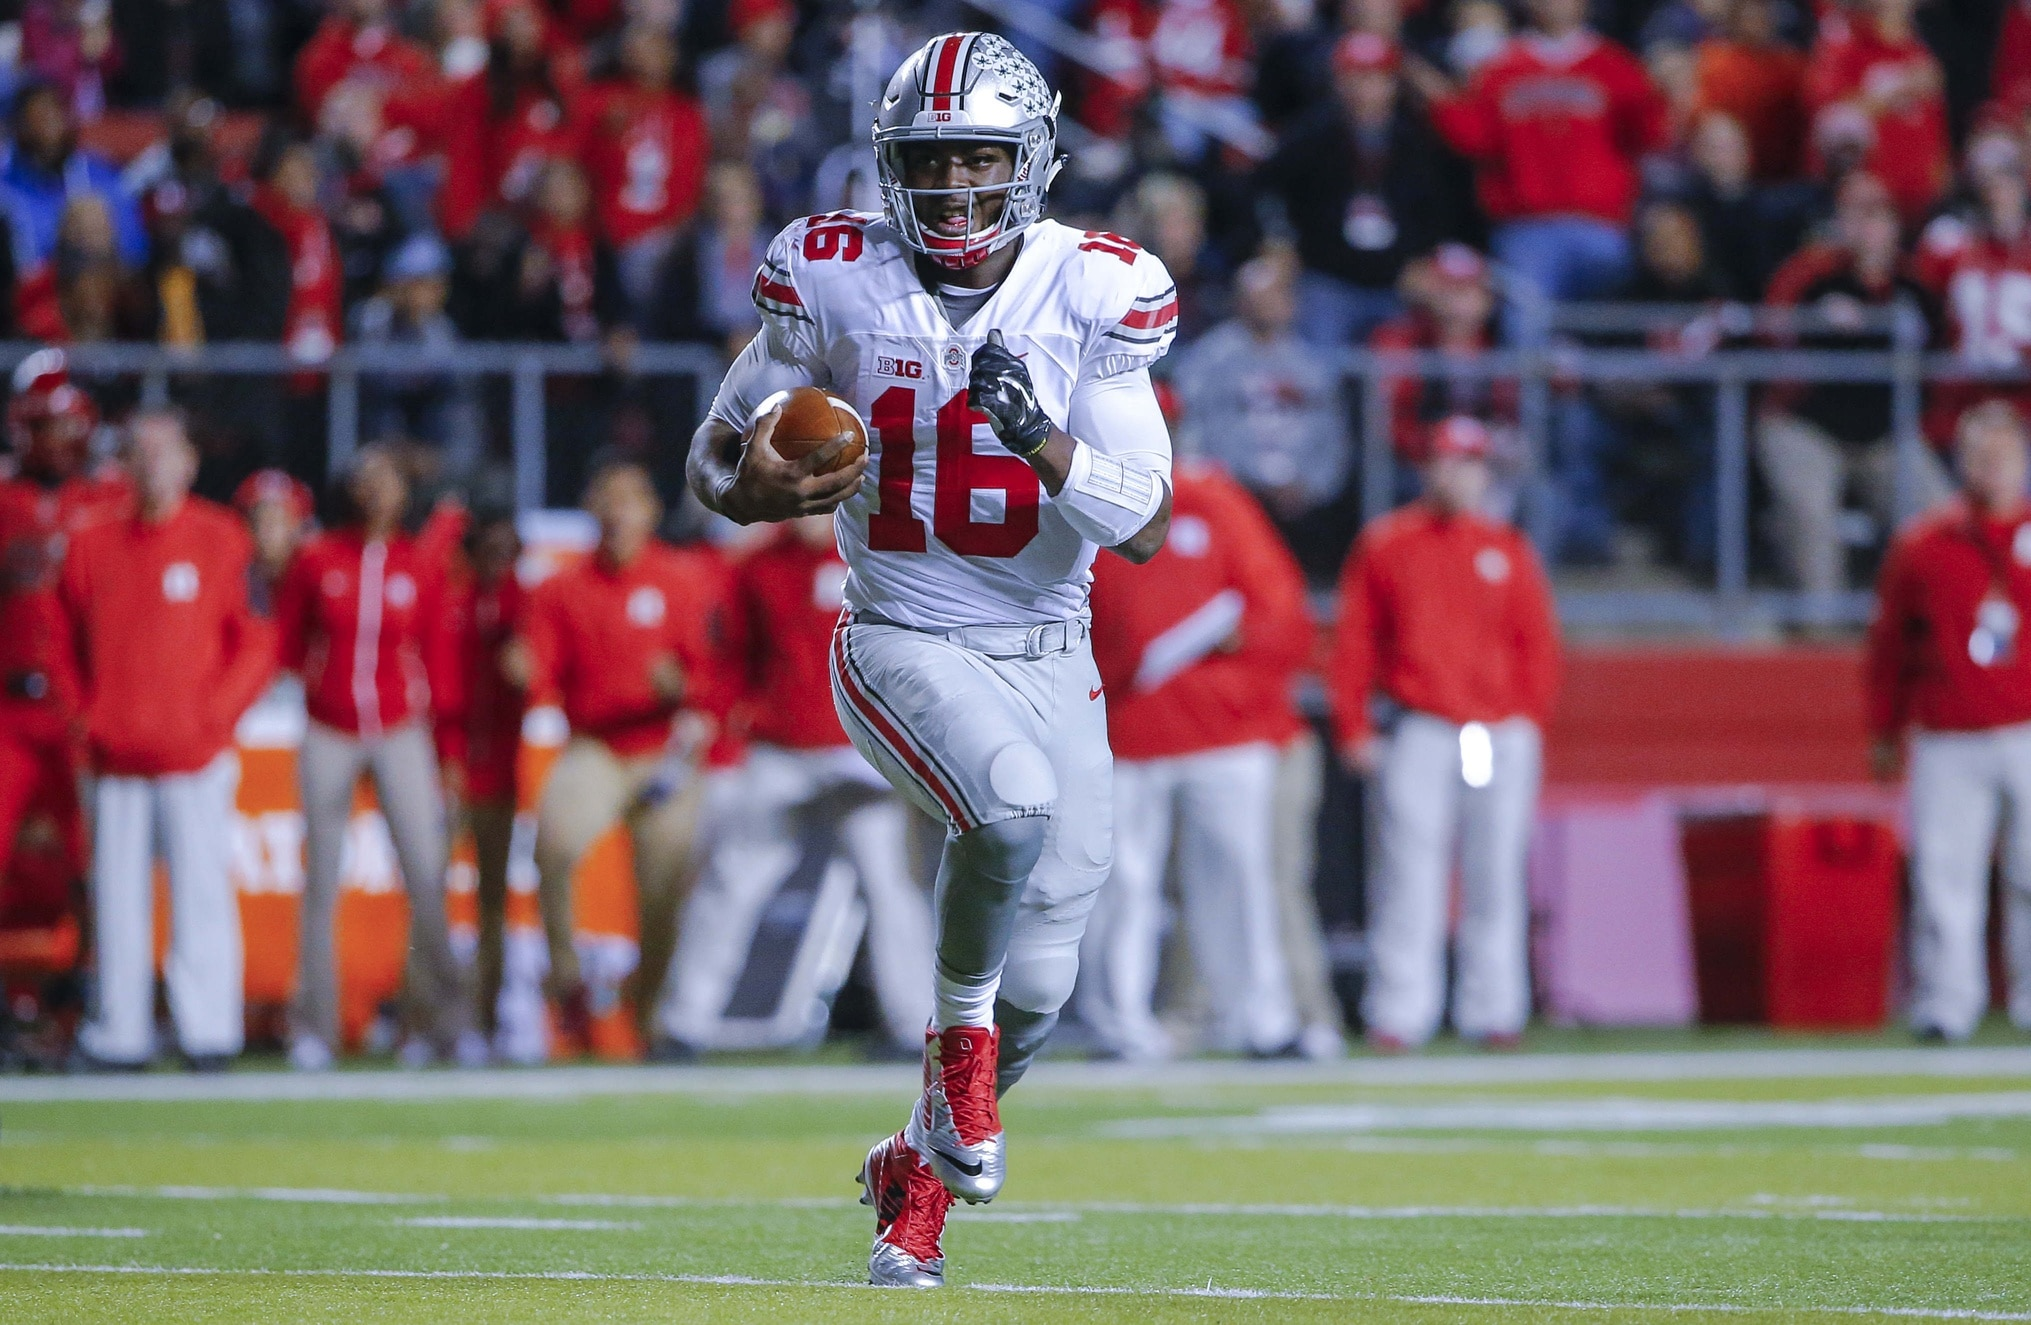 J.T. Barrett leads a red-hot Ohio State into enemy territory in college football Week 7